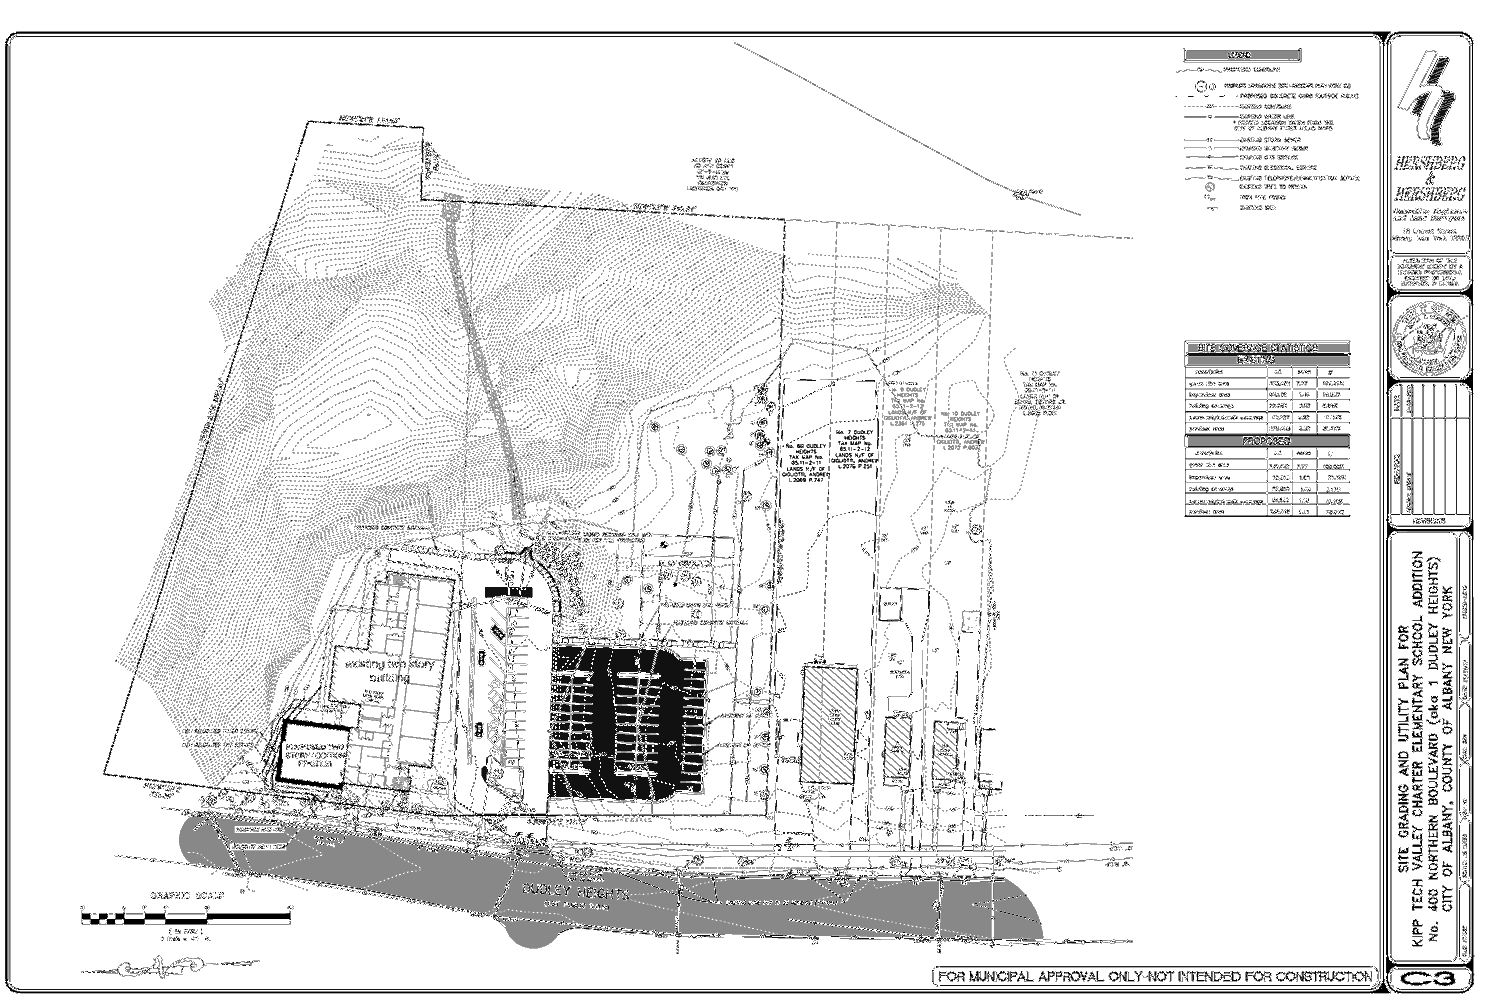 400 Northern Boulevard KIPP expansion site plan 2018-03-15